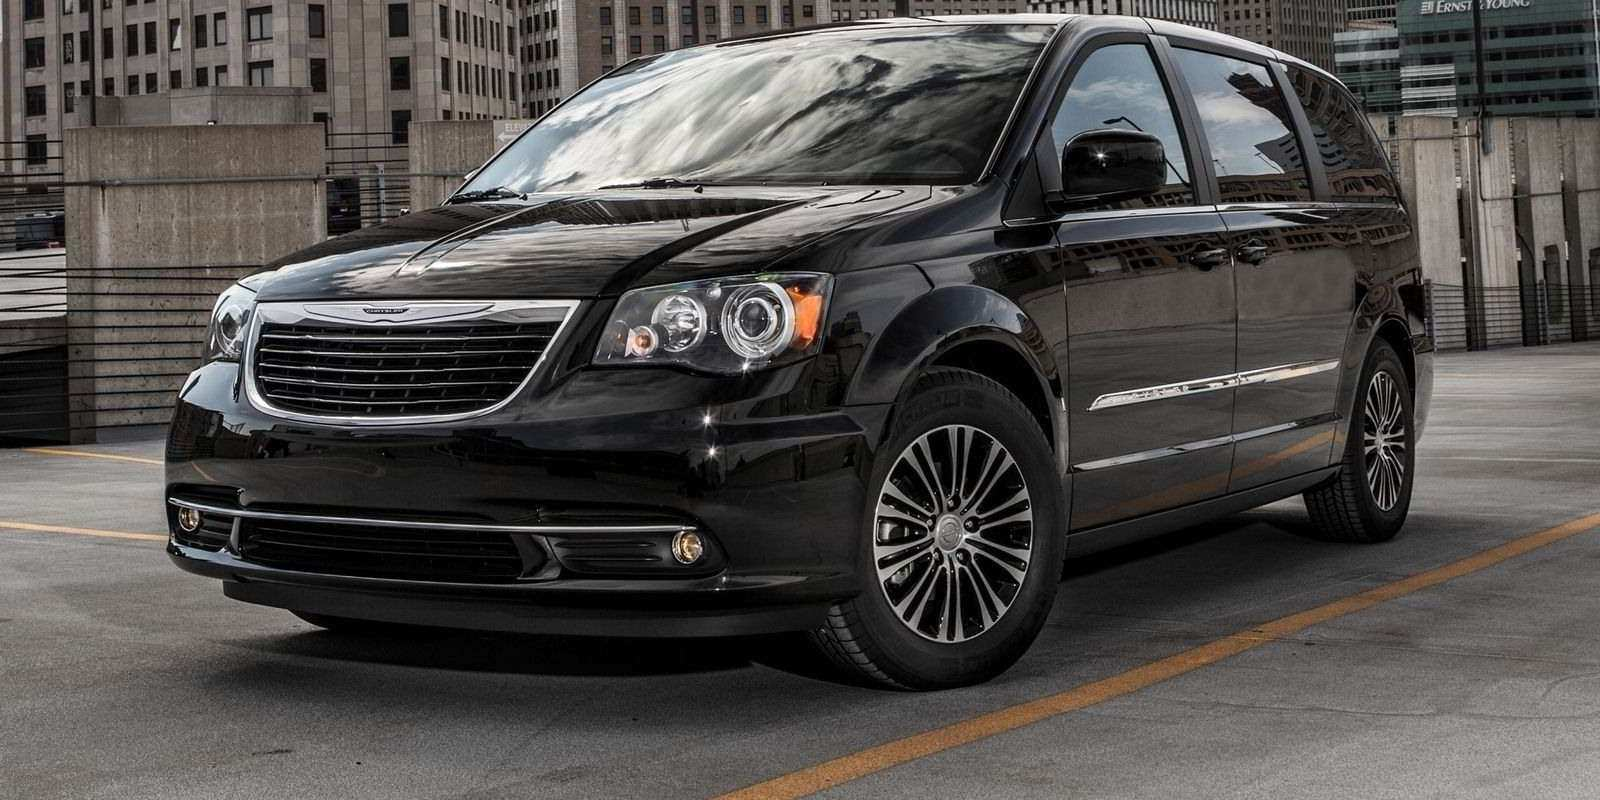 41 Concept of 2020 Chrysler Town And Country Specs with 2020 Chrysler Town And Country